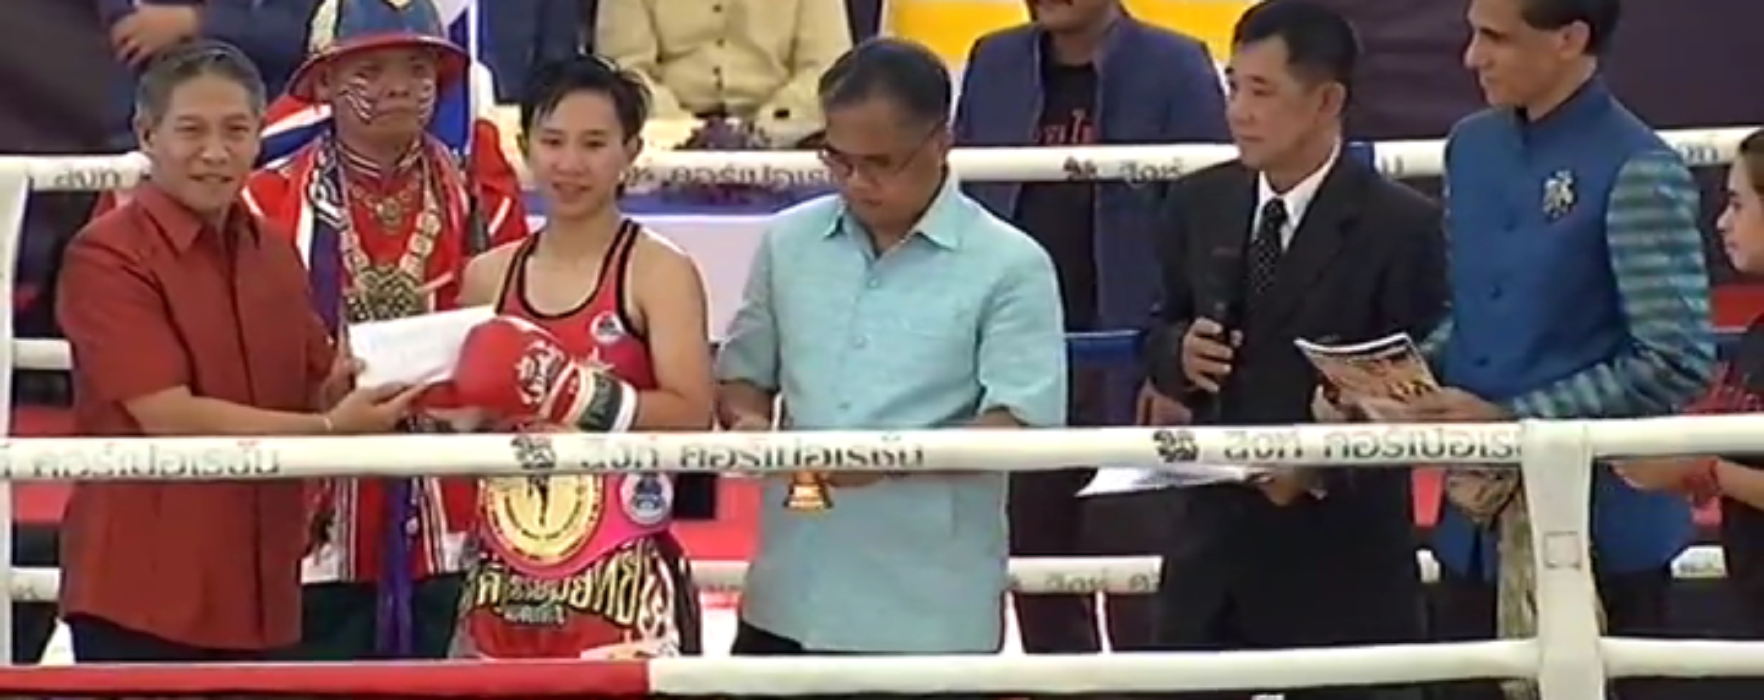 Thananchanok winner of female tournament in Ayutthaya